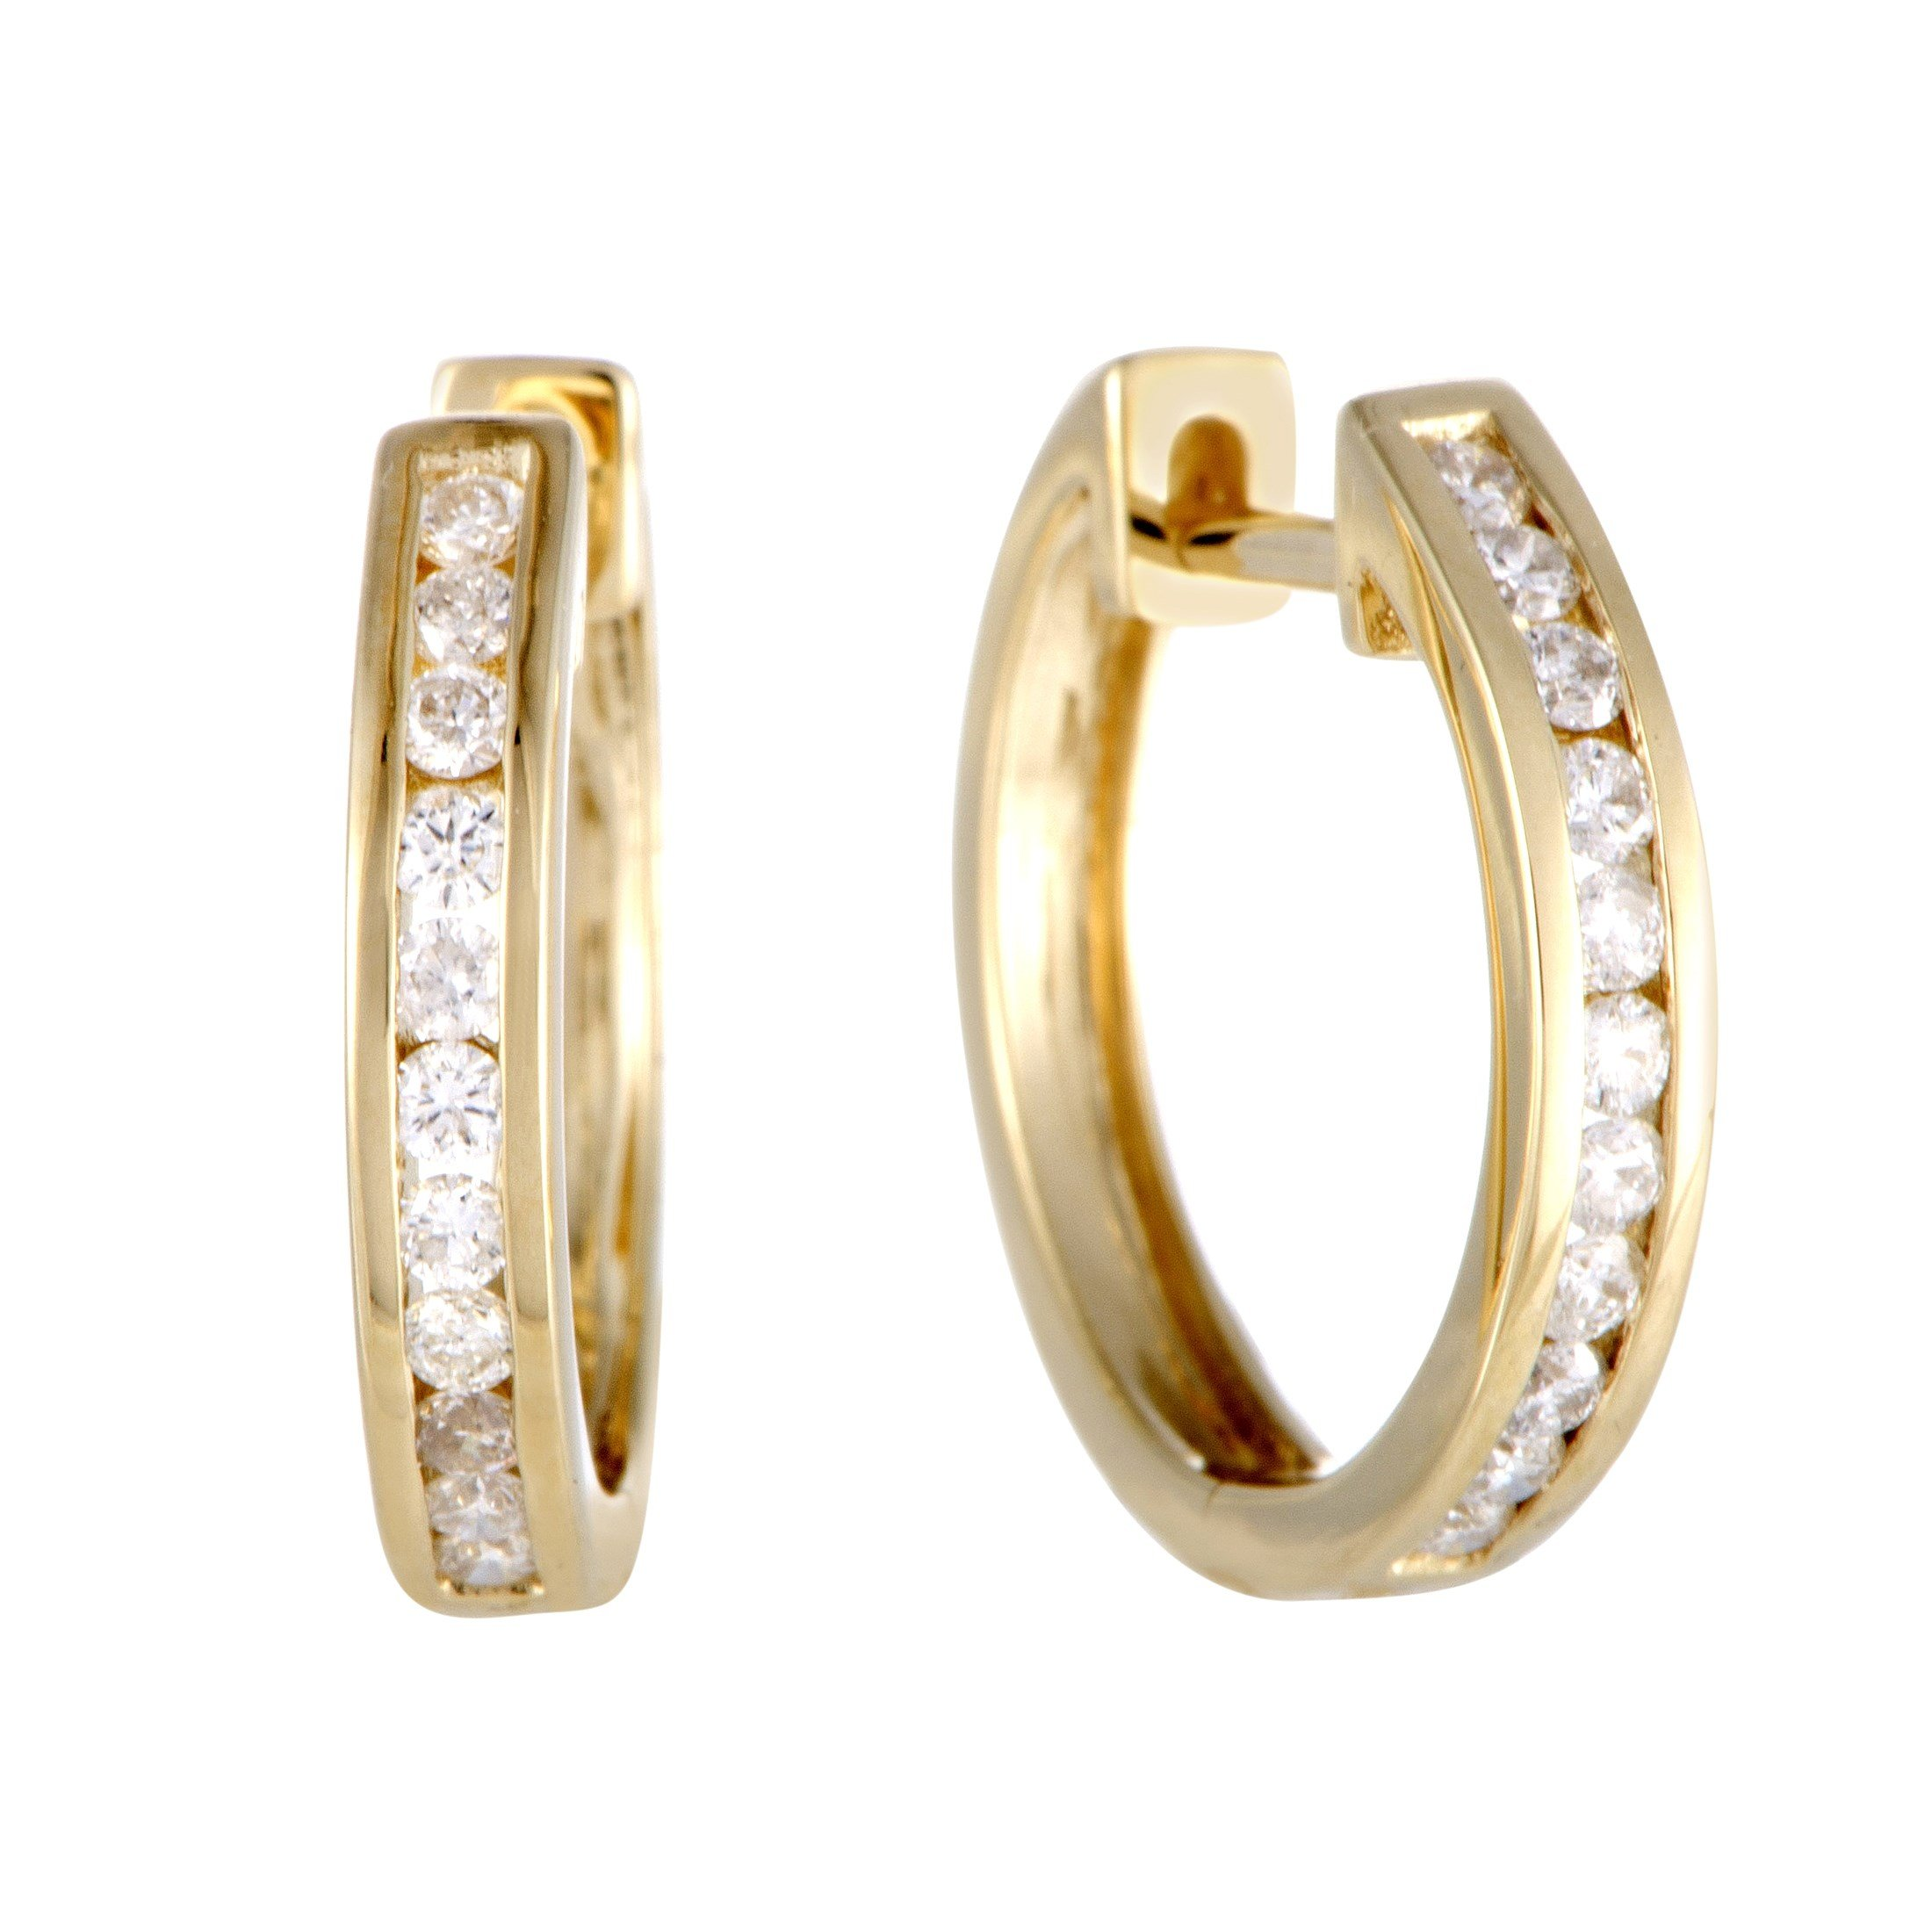 0.33 Carat (ctw) Round Diamond Hoop Earrings; 1/3 CT White Diamonds (G Color, SI1-SI2 Clarity) in 0.6'' 14K Yellow Gold Hoops